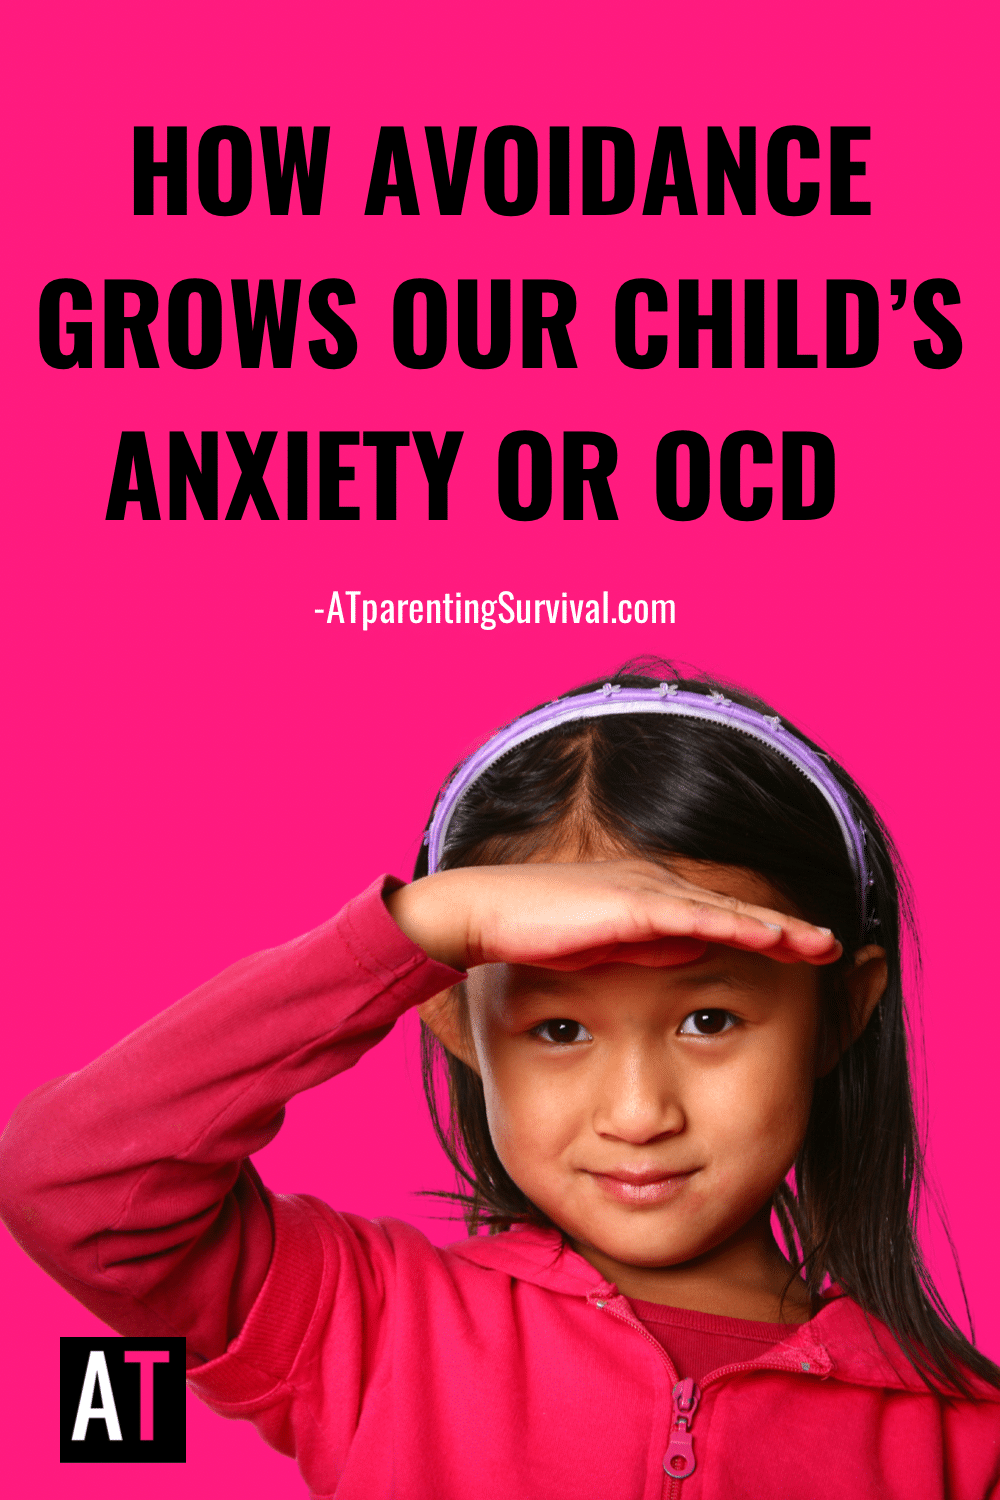 How Avoidance Grows Our child's Anxiety or OCD